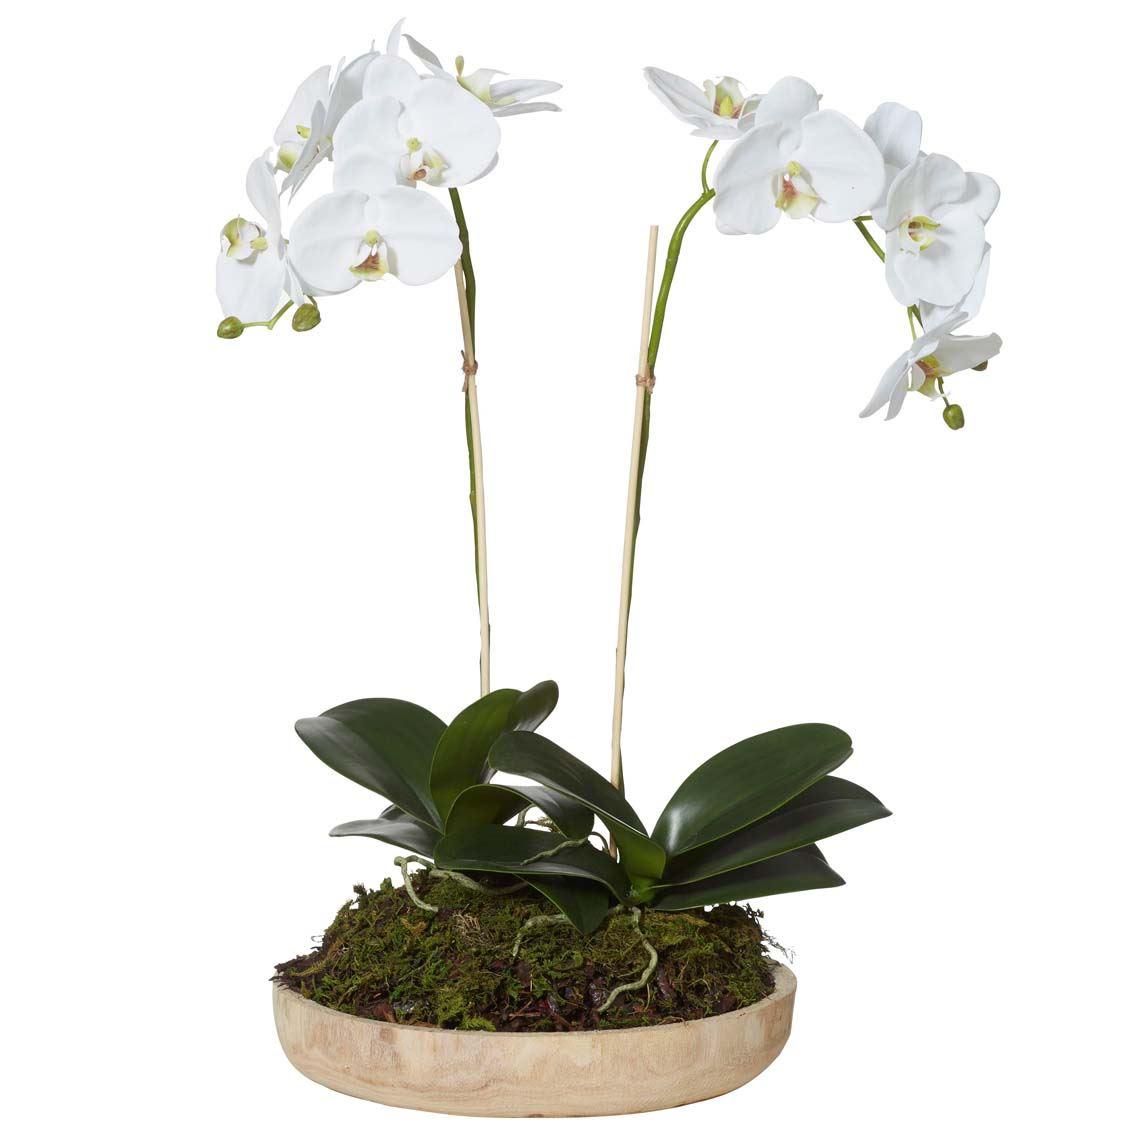 Phalaenopsis Orchid Size W 32cm x D 32cm x H 56cm in White Plastic/Fabric/Wire Freedom by Freedom, a Plants for sale on Style Sourcebook